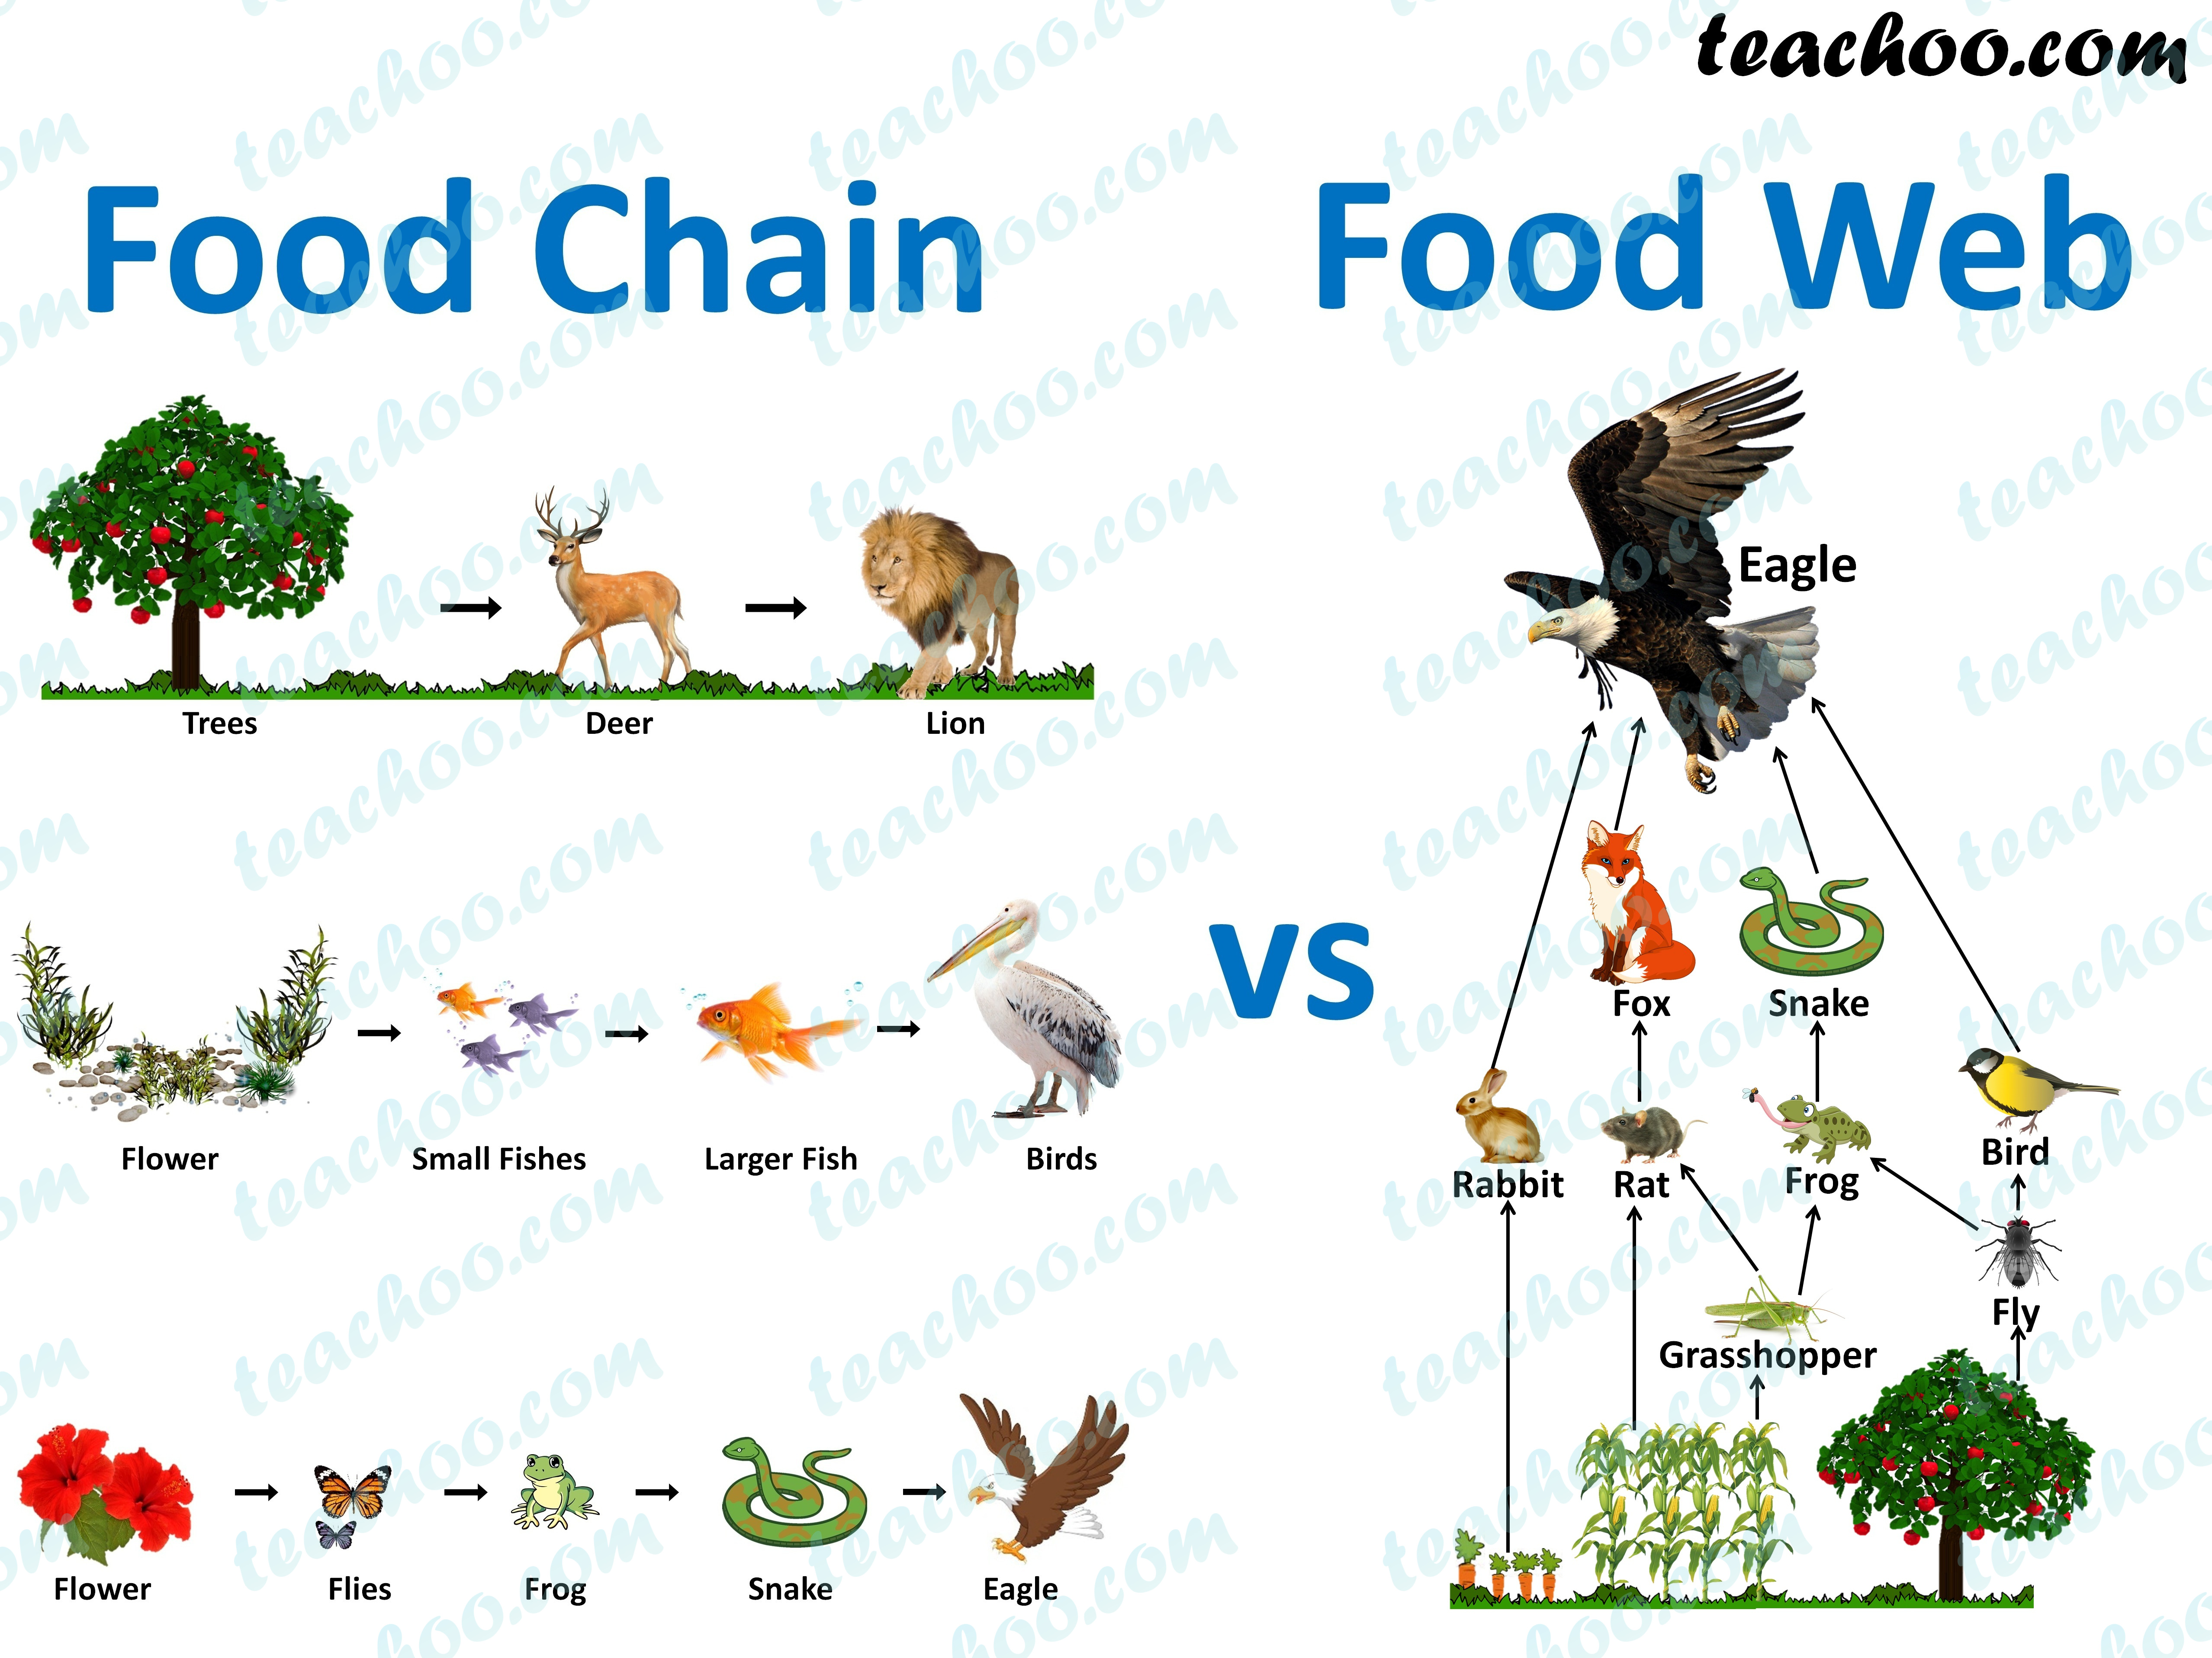 What Is The Difference Between Food Chain And Food Web